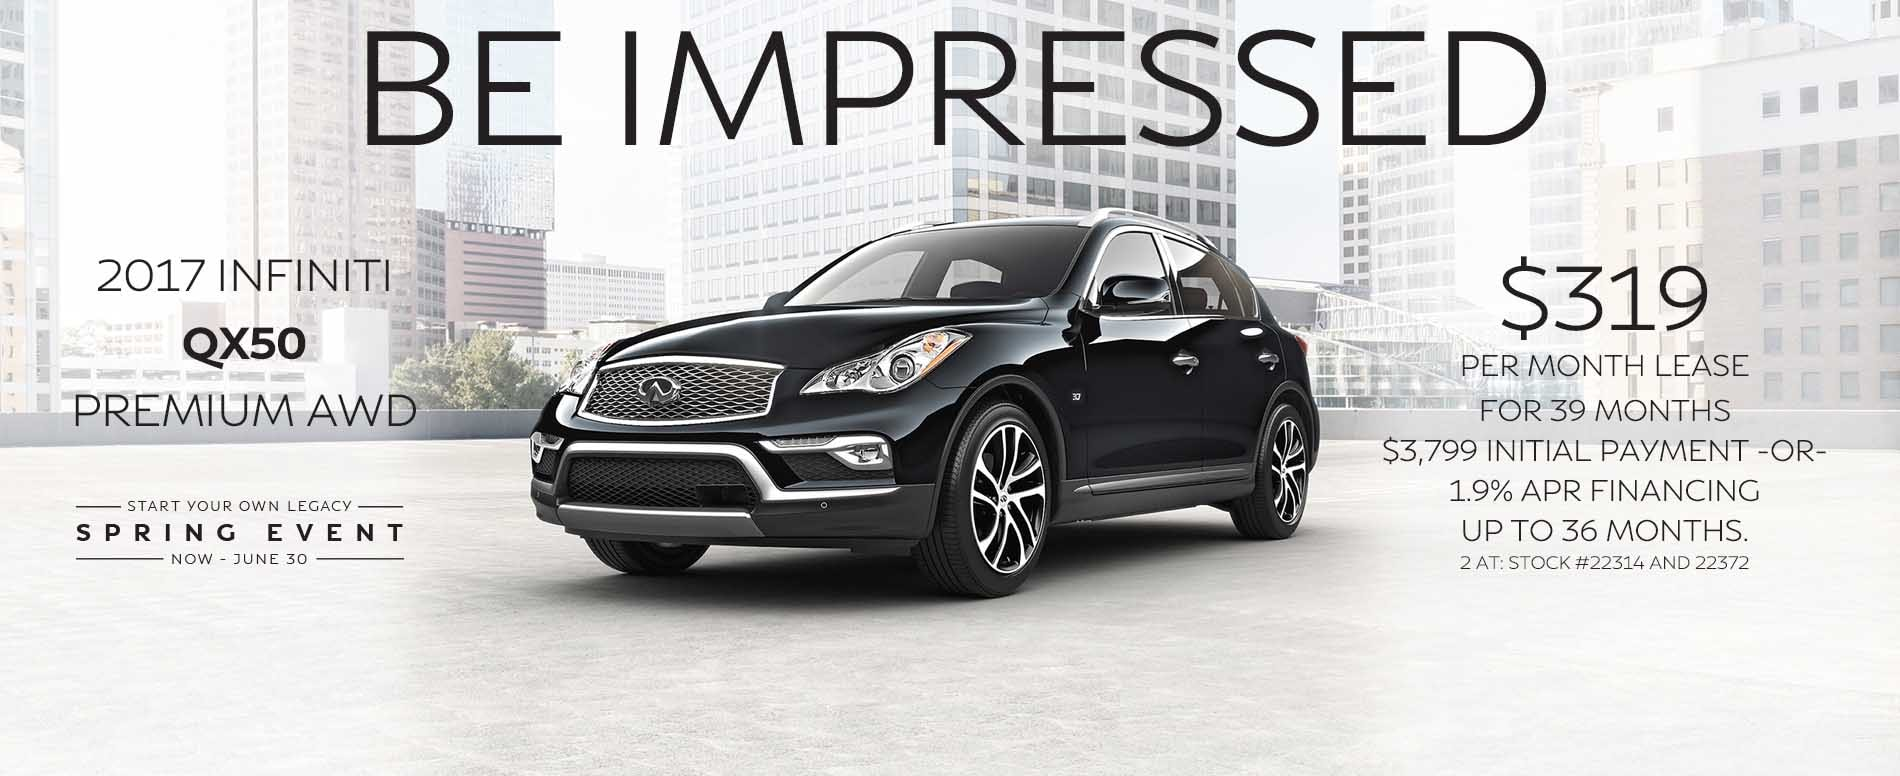 BE thrilled. Lease a 2017 INFINITI QX50 for $319 per month with $3,799 due at signing or 1.9% APR financing up to 36 months.